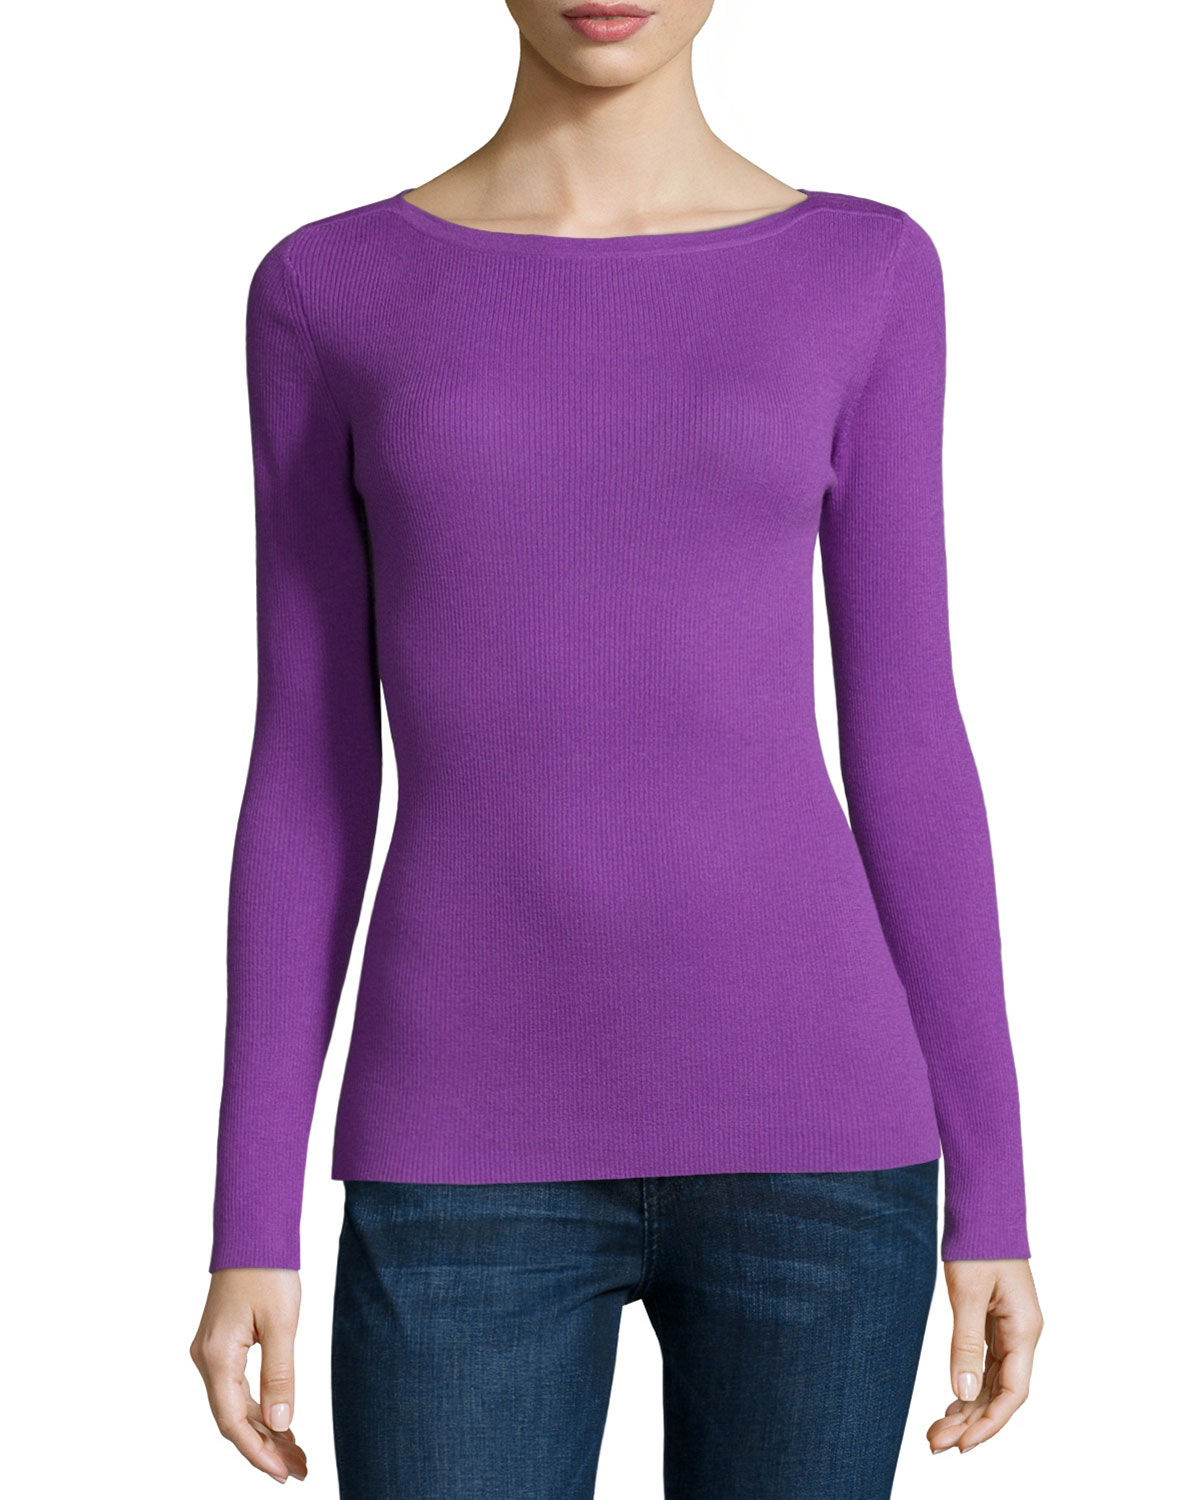 Long-Sleeve Cashmere Top, Lilac